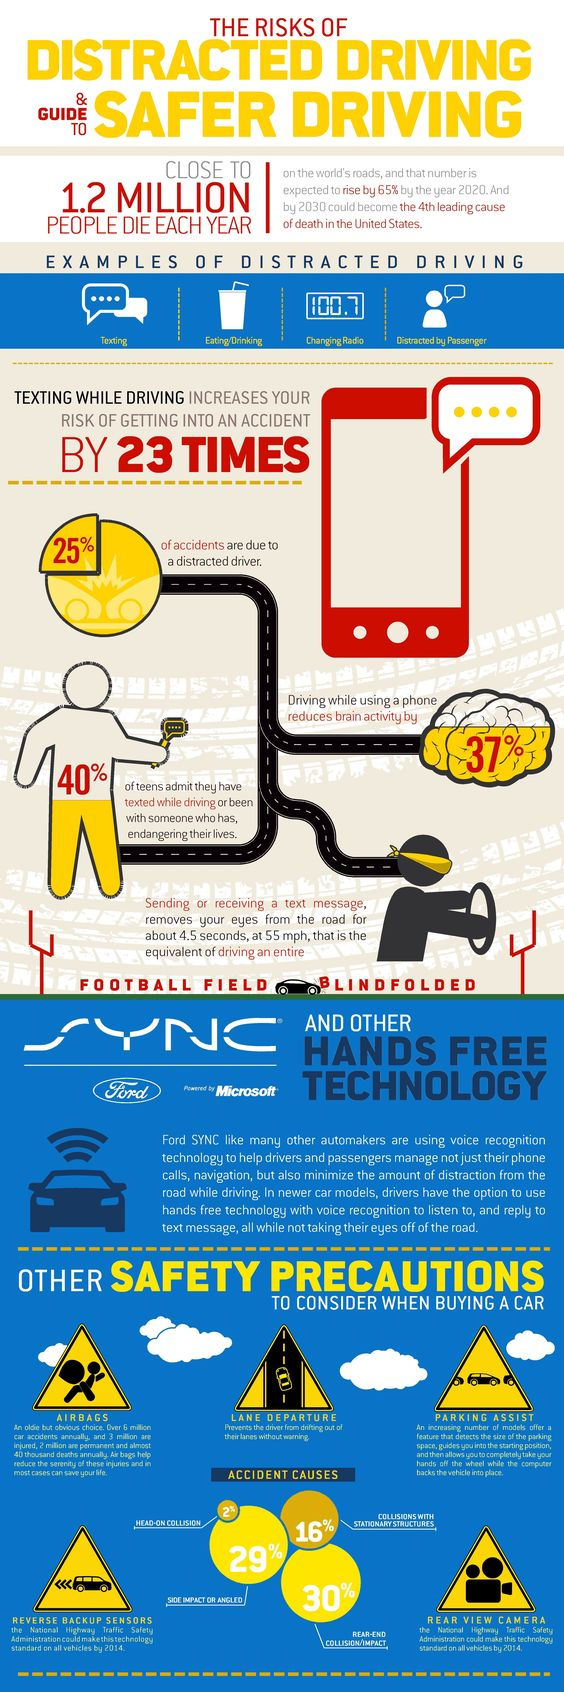 distracted driving risks and guide to safer driving distracted the dangers of distracted driving almost million people die each year due to vehicle accidents caused by distracted driving